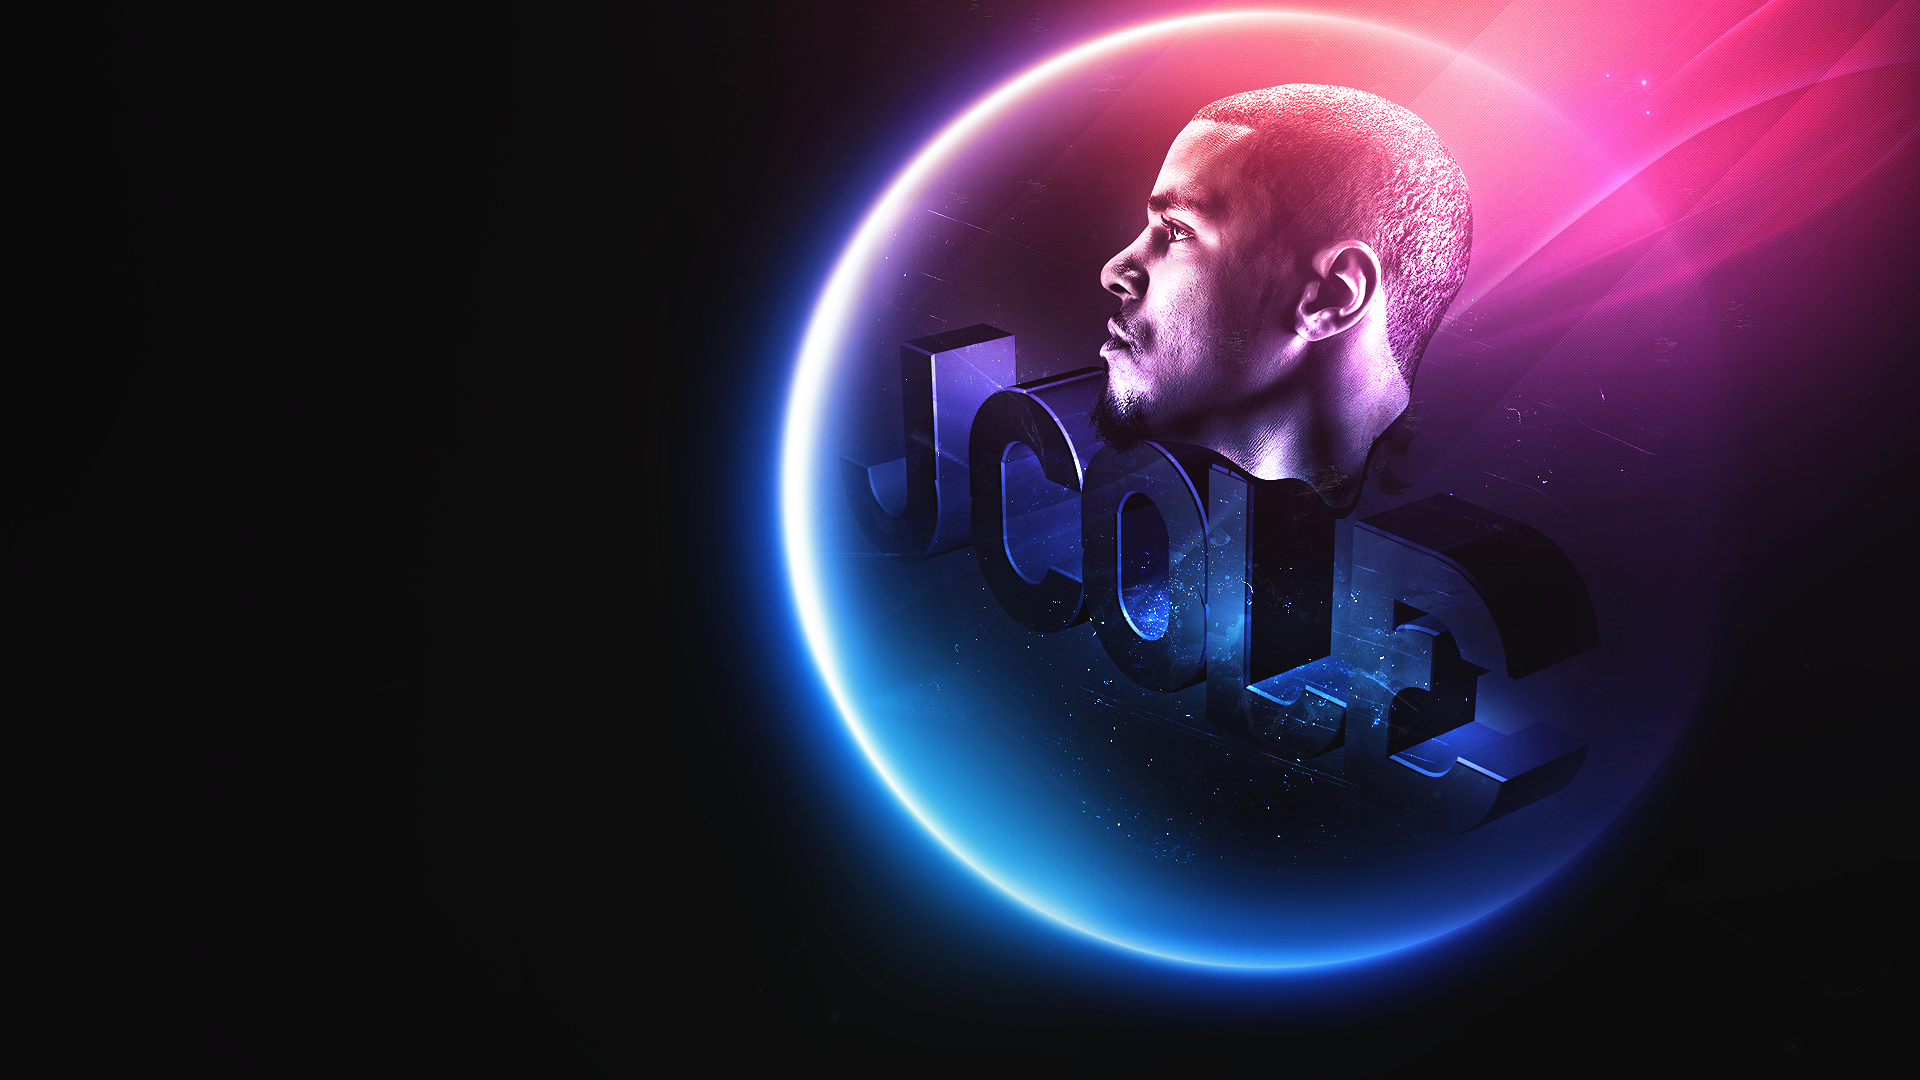 Good Wallpaper Mac J Cole - j__cole_with_guru_by_hat_94-d54v7zy  Trends_369344.png